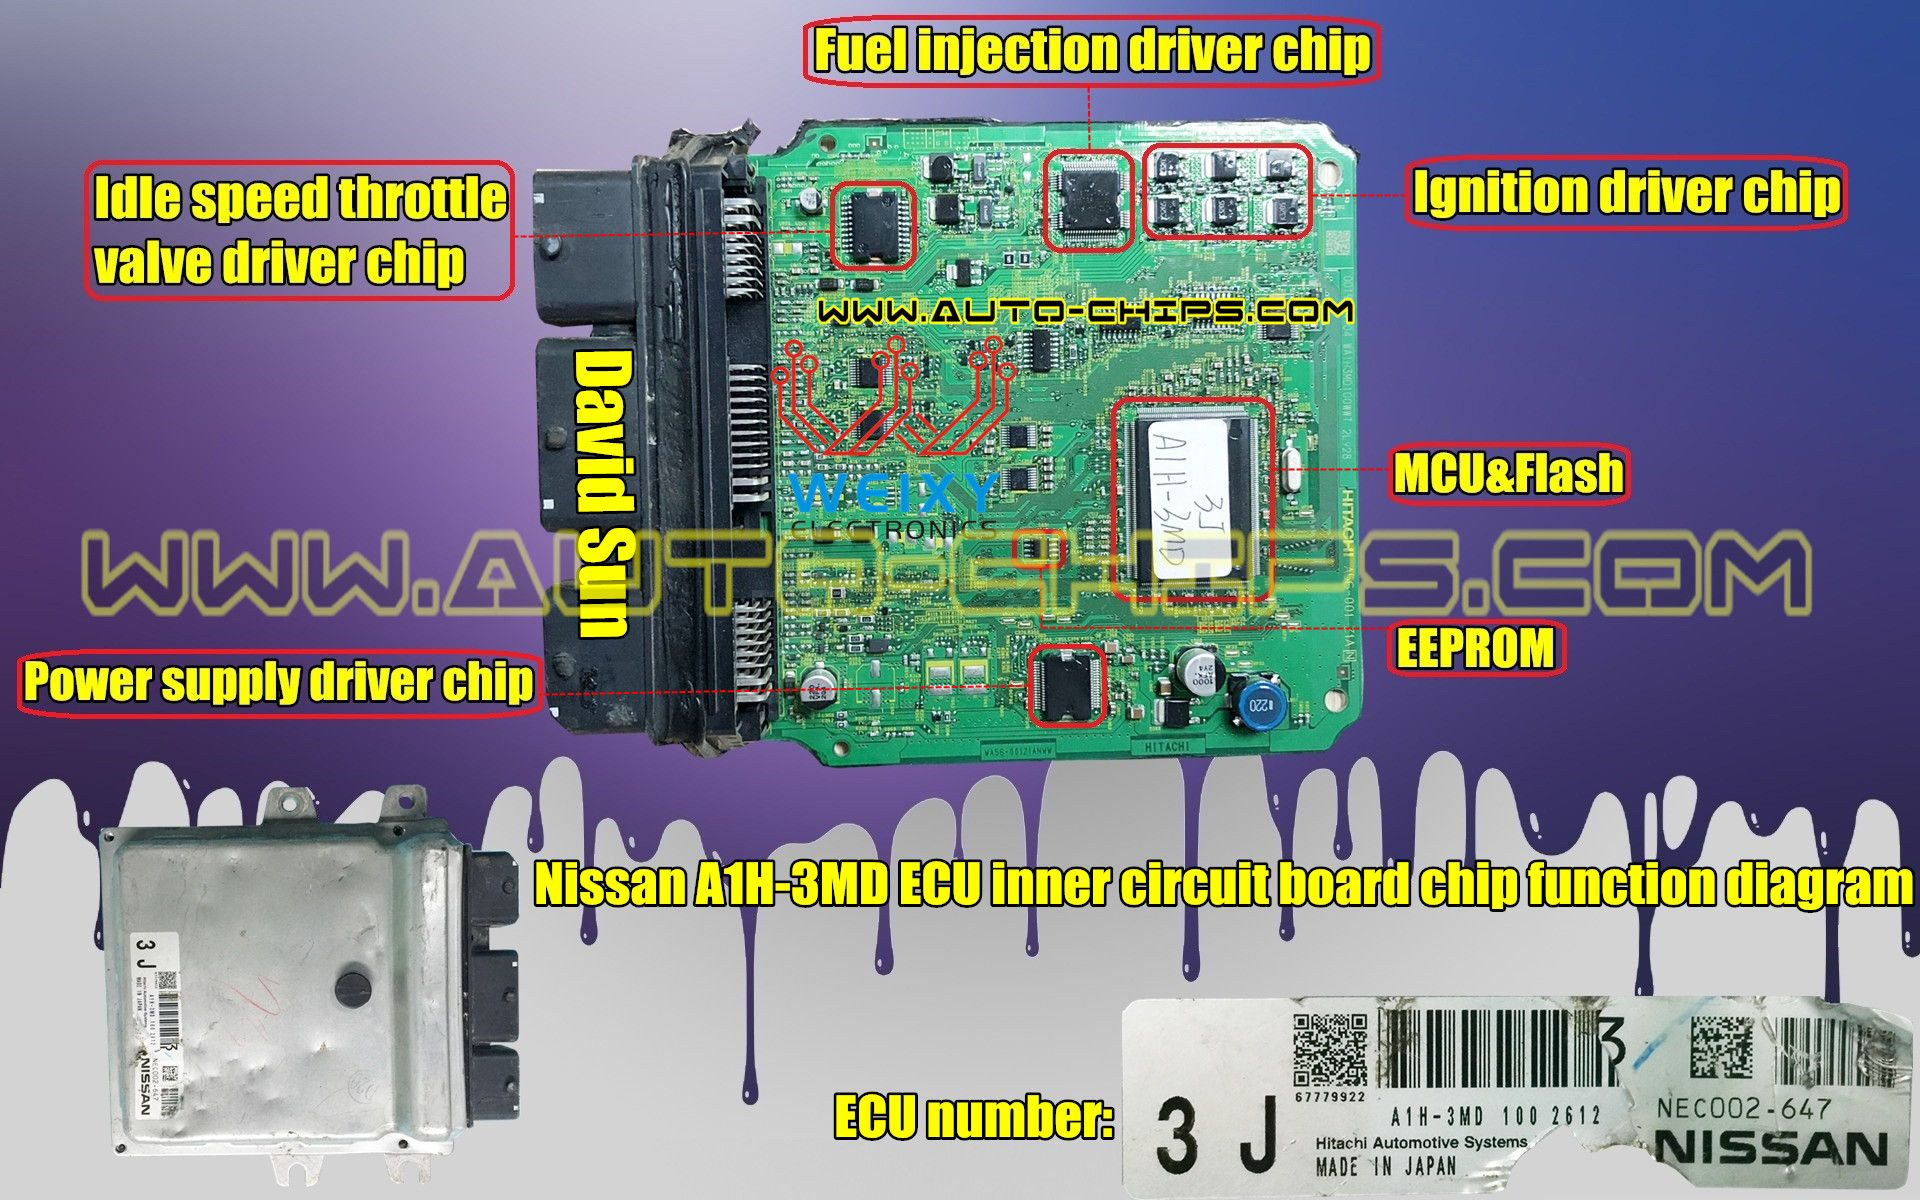 hight resolution of nissan a1h 3md ecu inner circuit board chip function diagram we supply all kinds of